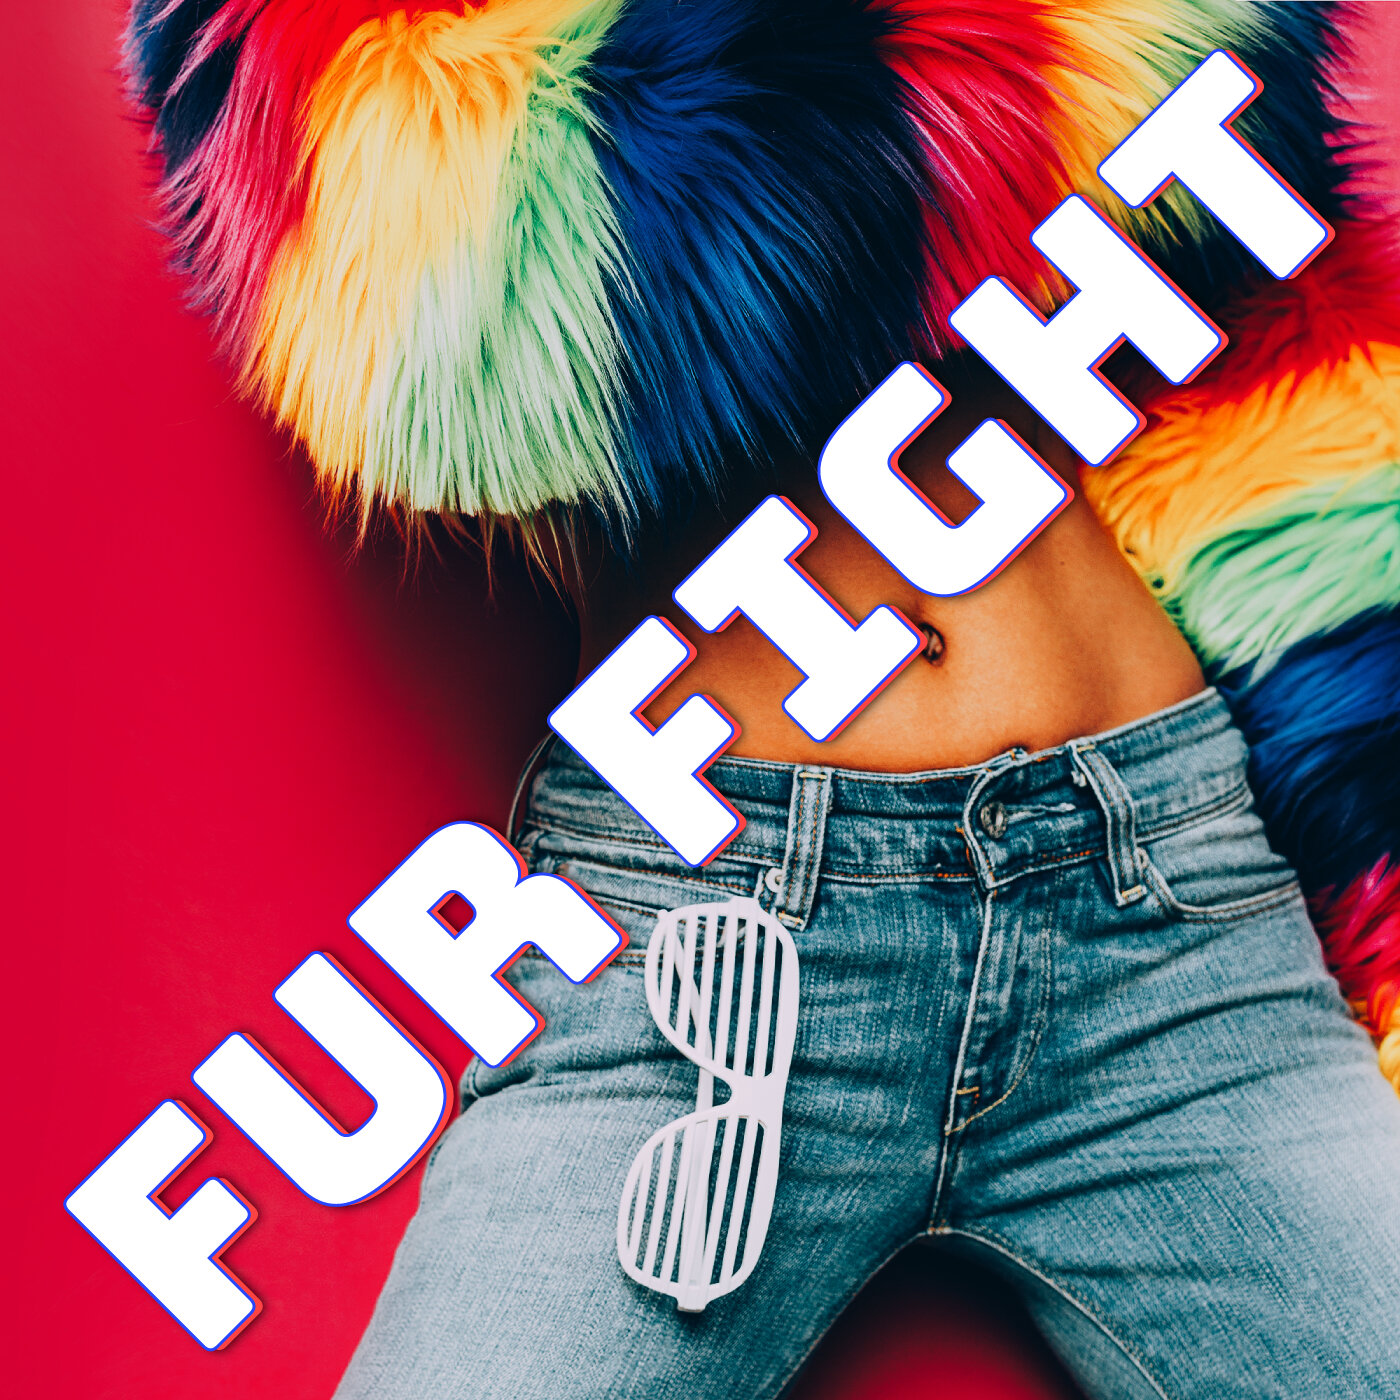 218 - New York's City Council Wants To Ban Fuzzy Leather? The Accessories Council Has Some Opinions